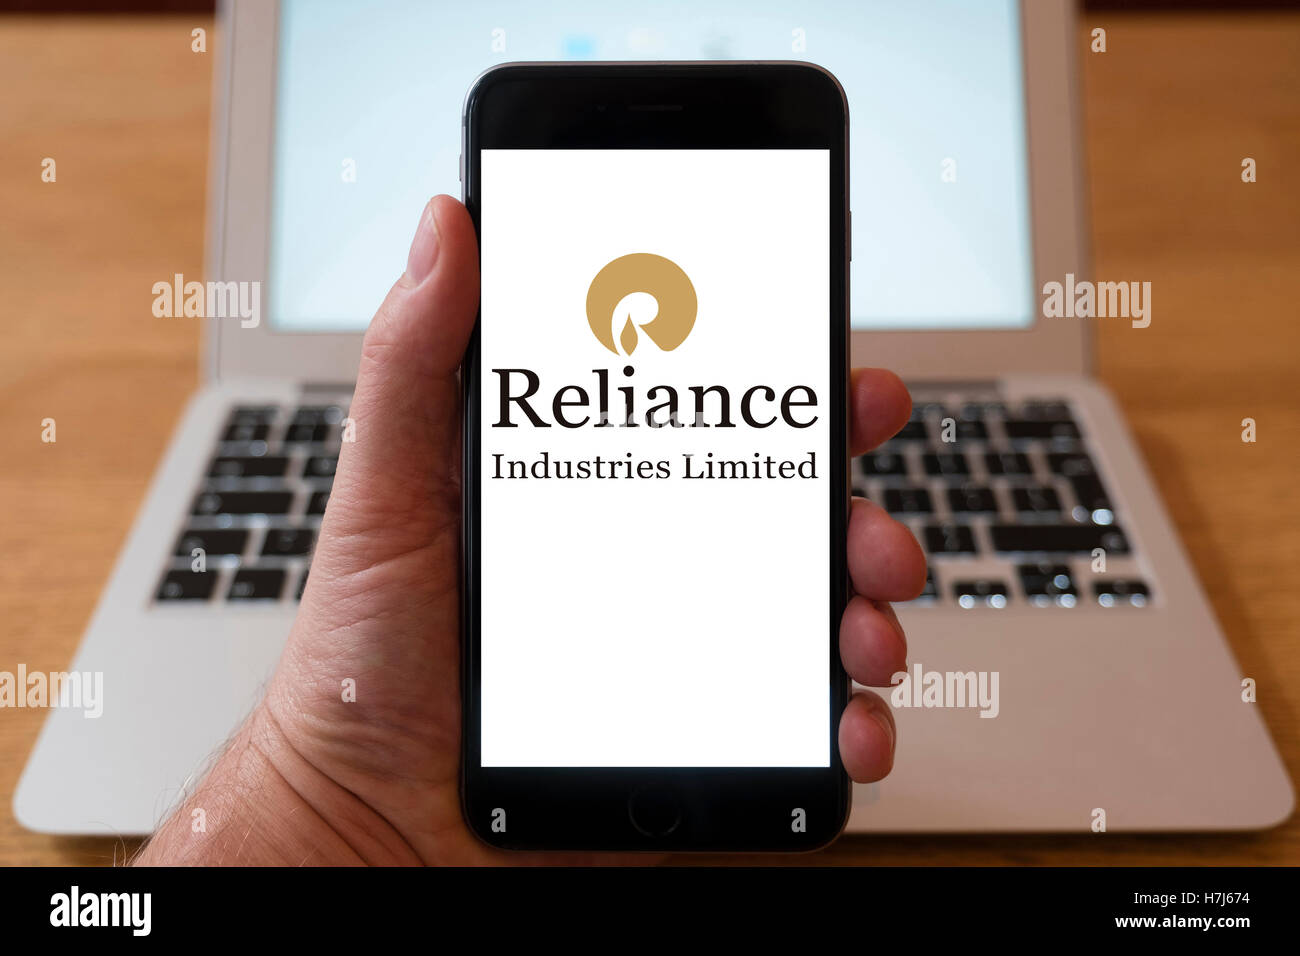 Using iPhone smart phone to display logo of Reliance Industries; Indian conglomerate holding company - Stock Image